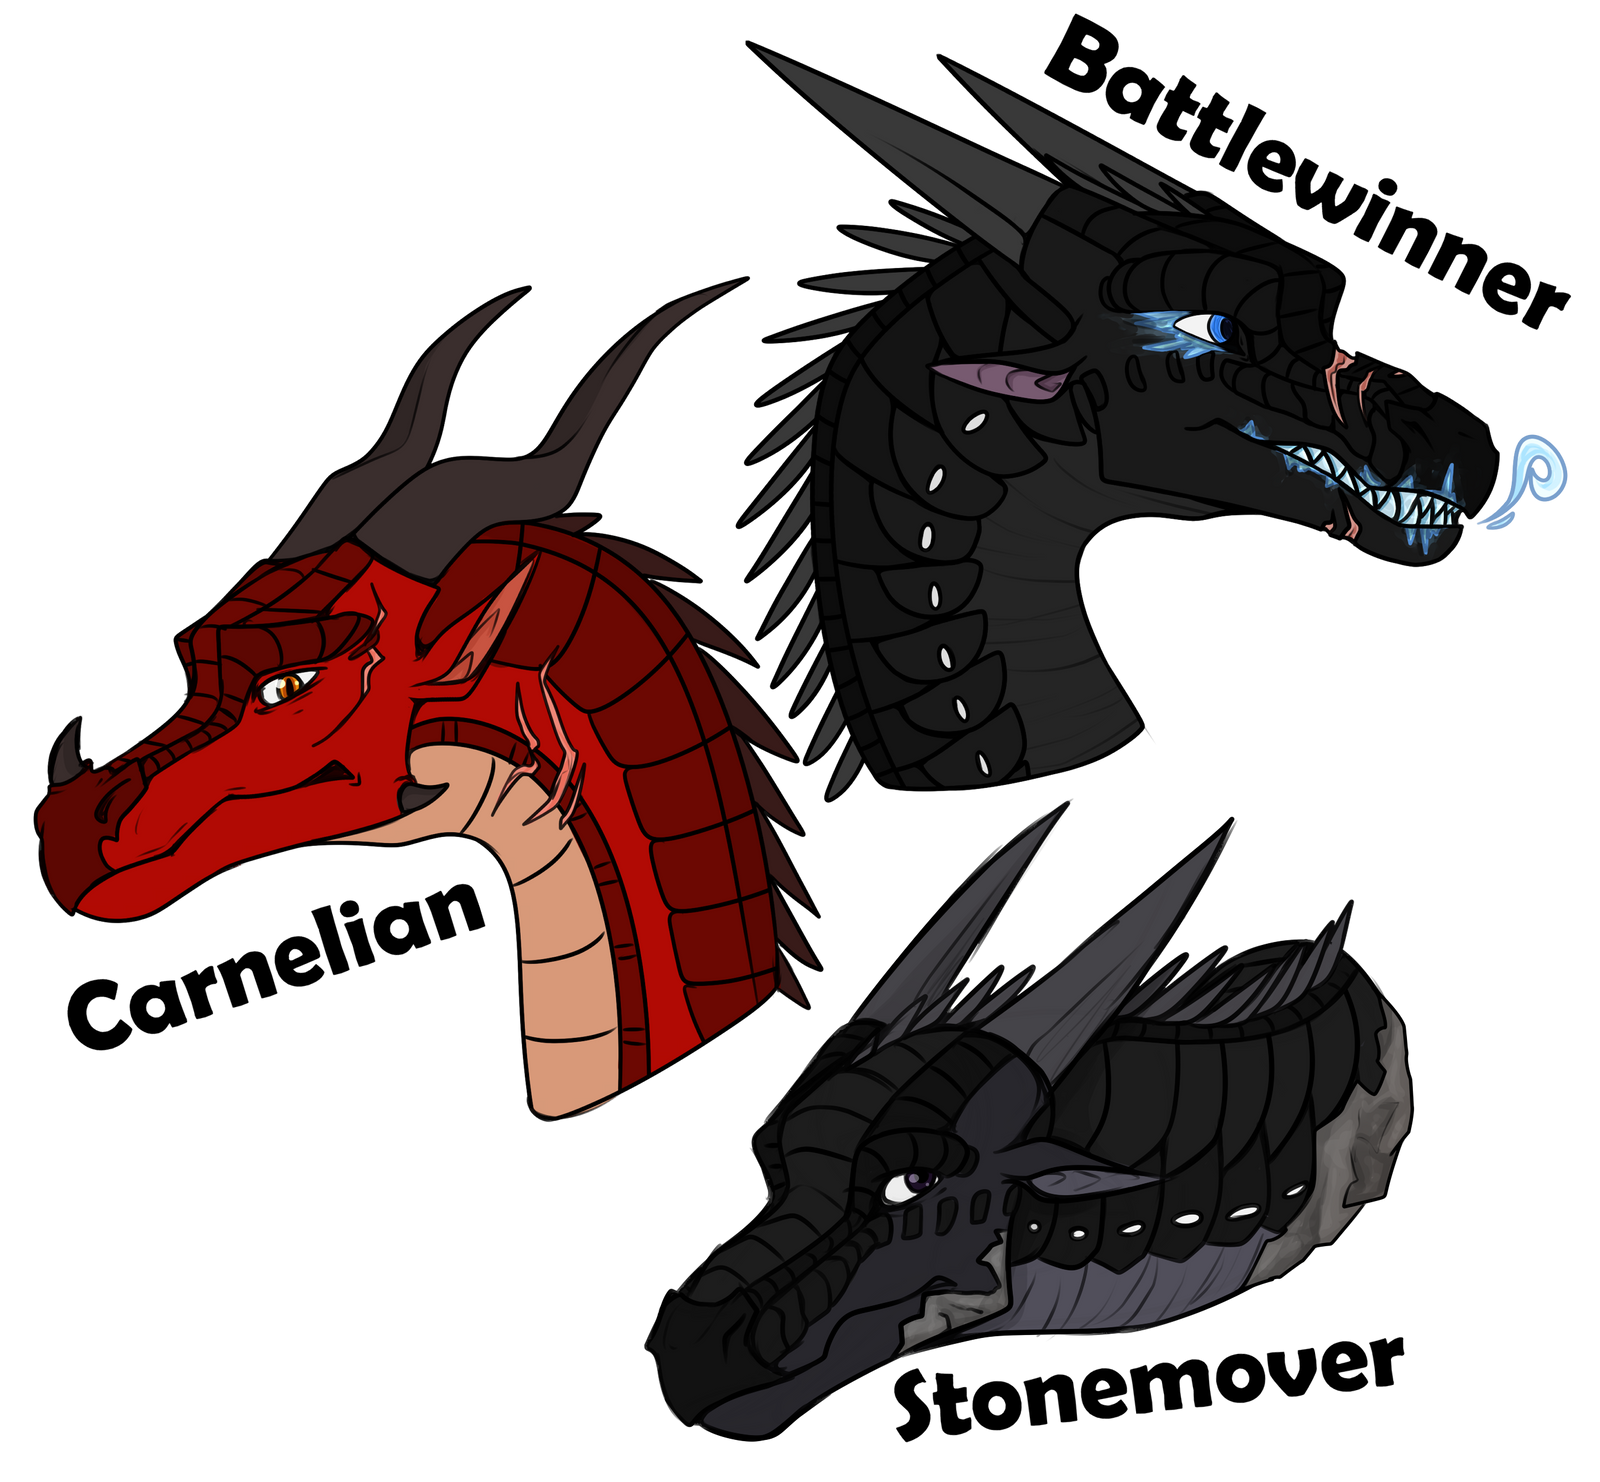 Wings of Fire Characters by Lamp-P0st on DeviantArt